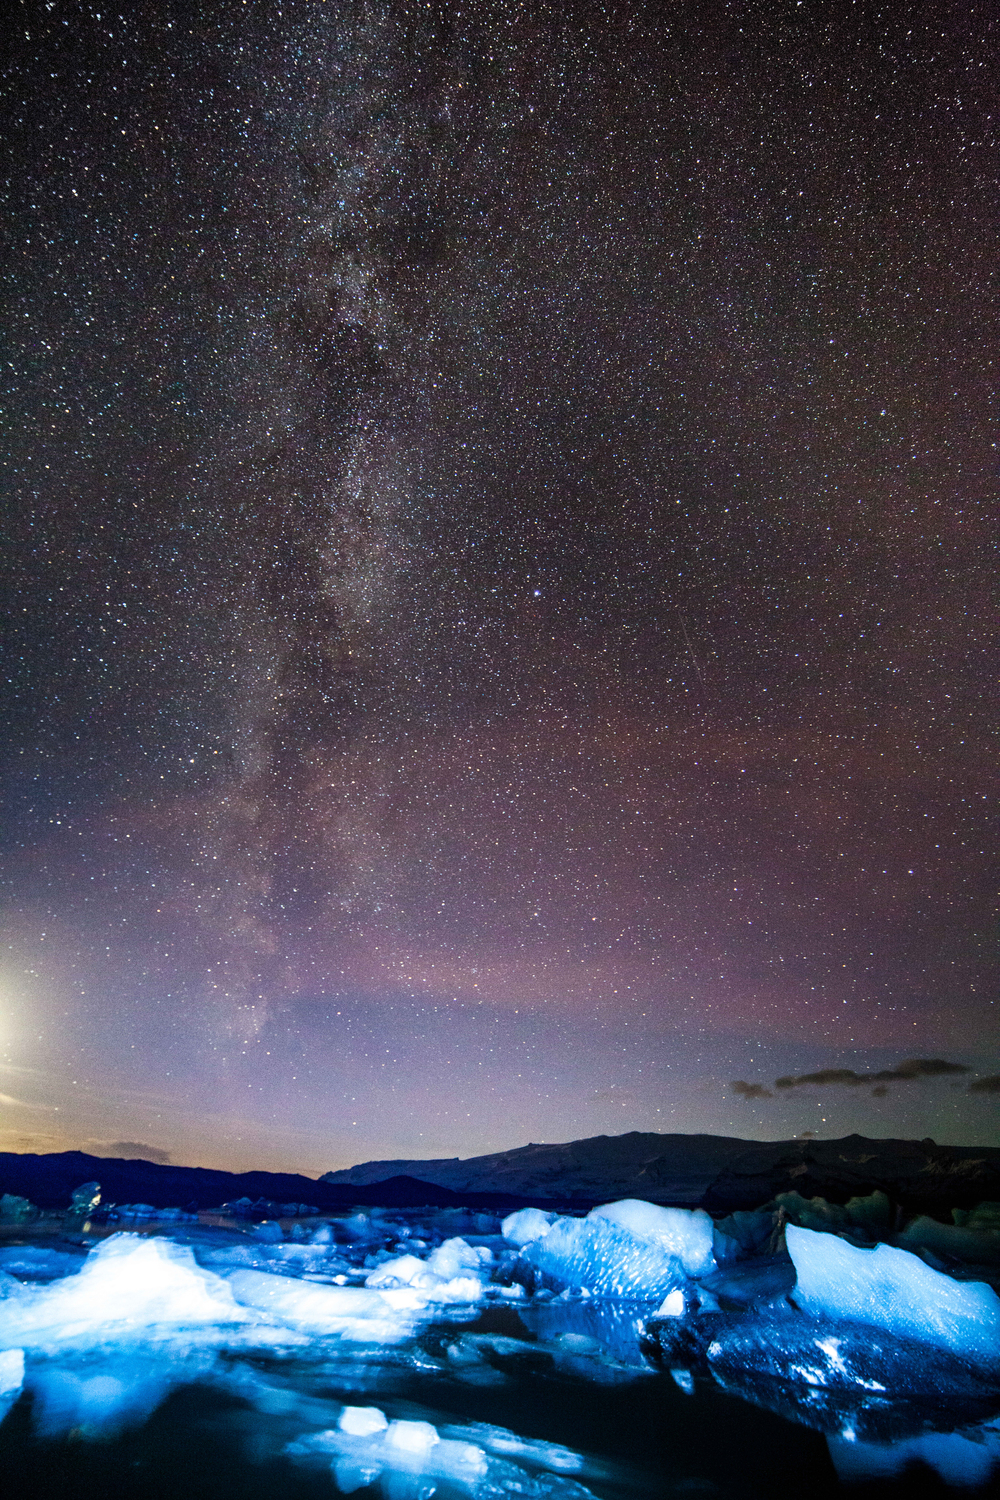 Milkyway Jokulsarlon_small.jpg